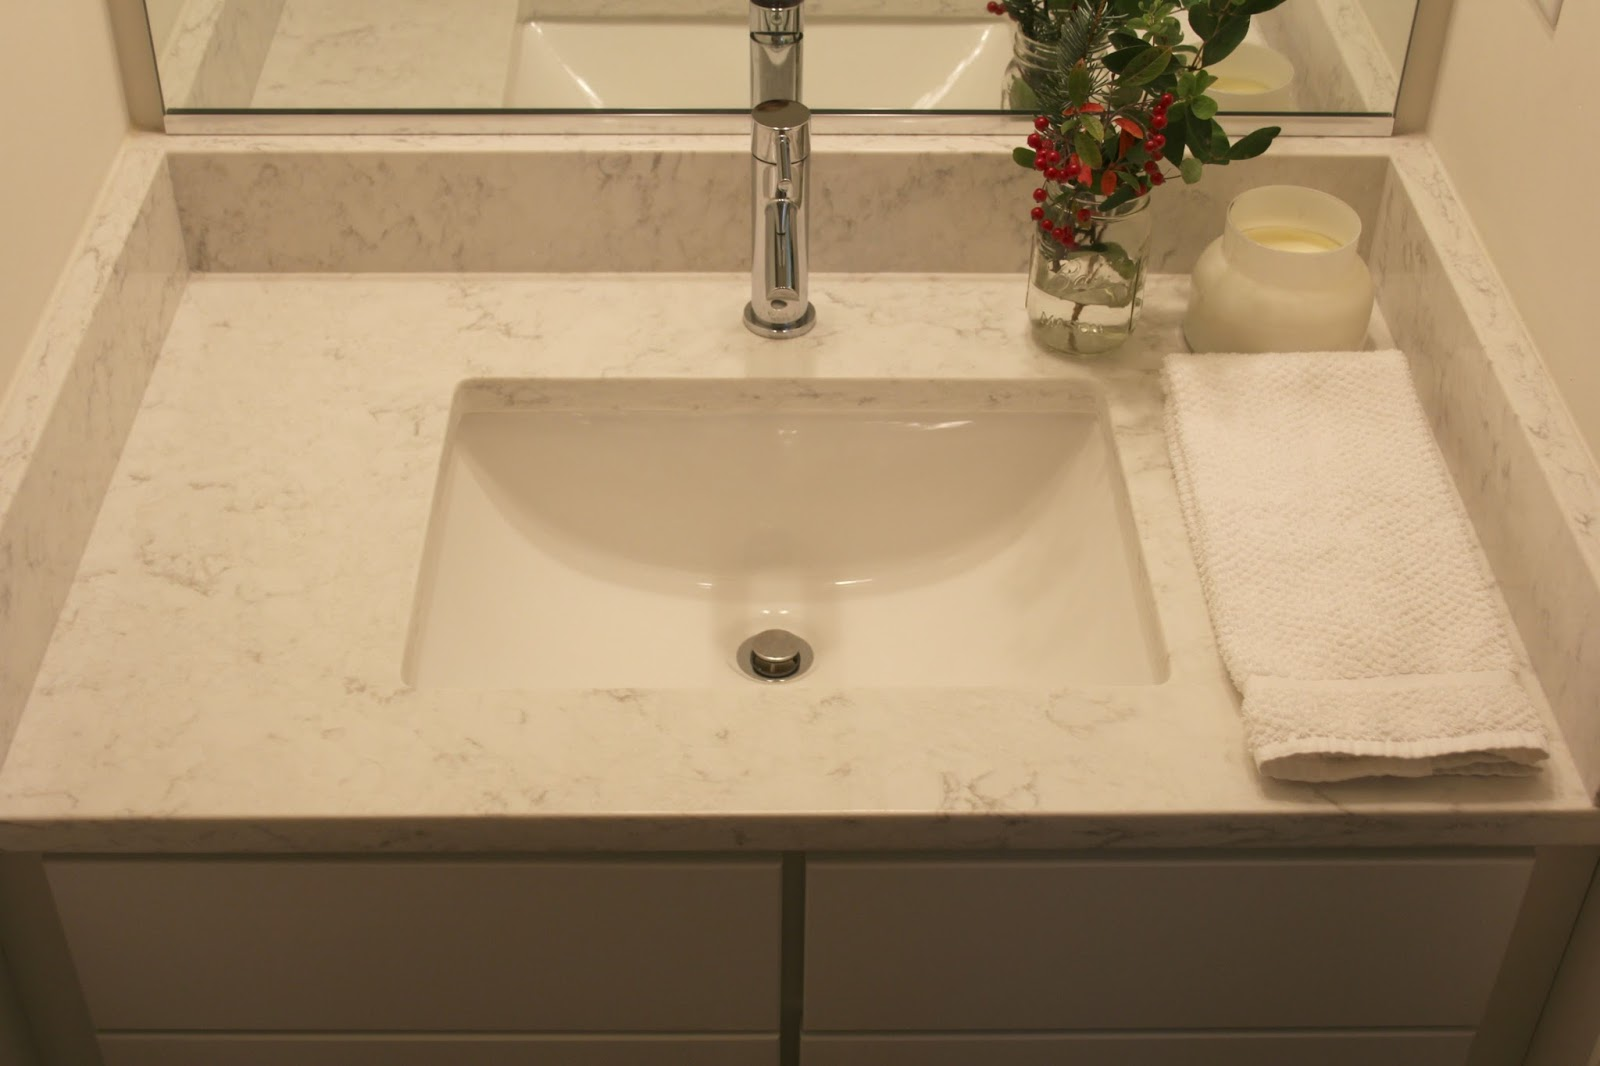 Viatera Minuet quartz countertop on a vanity in a powder room. #minuet #quartz #viatera #bathroomcounter